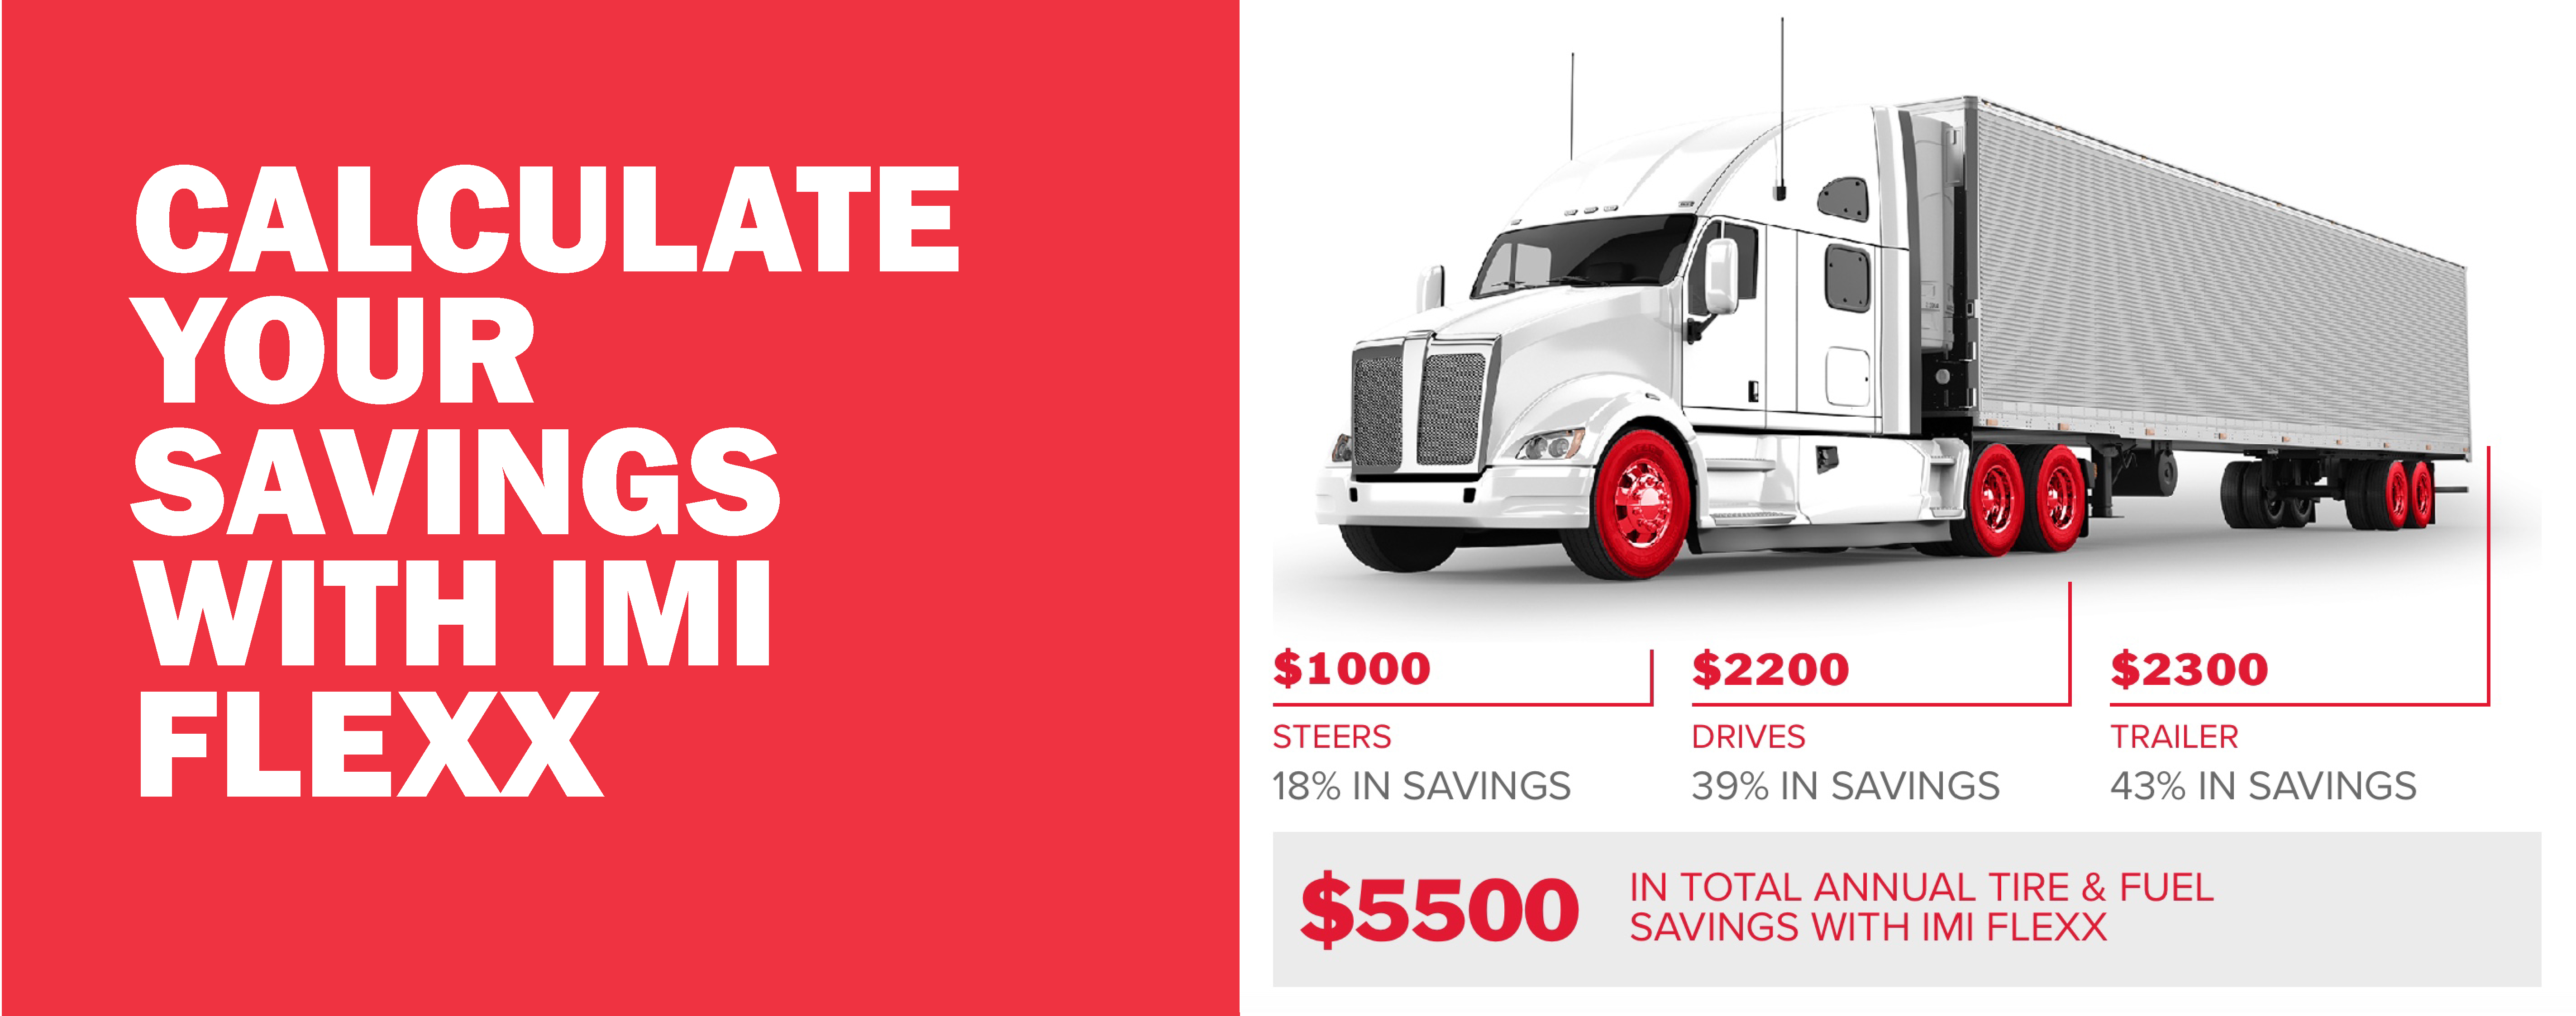 "The left half says ""calculate your savings with IMI Flexx"" and the right half has a truck with price savings"